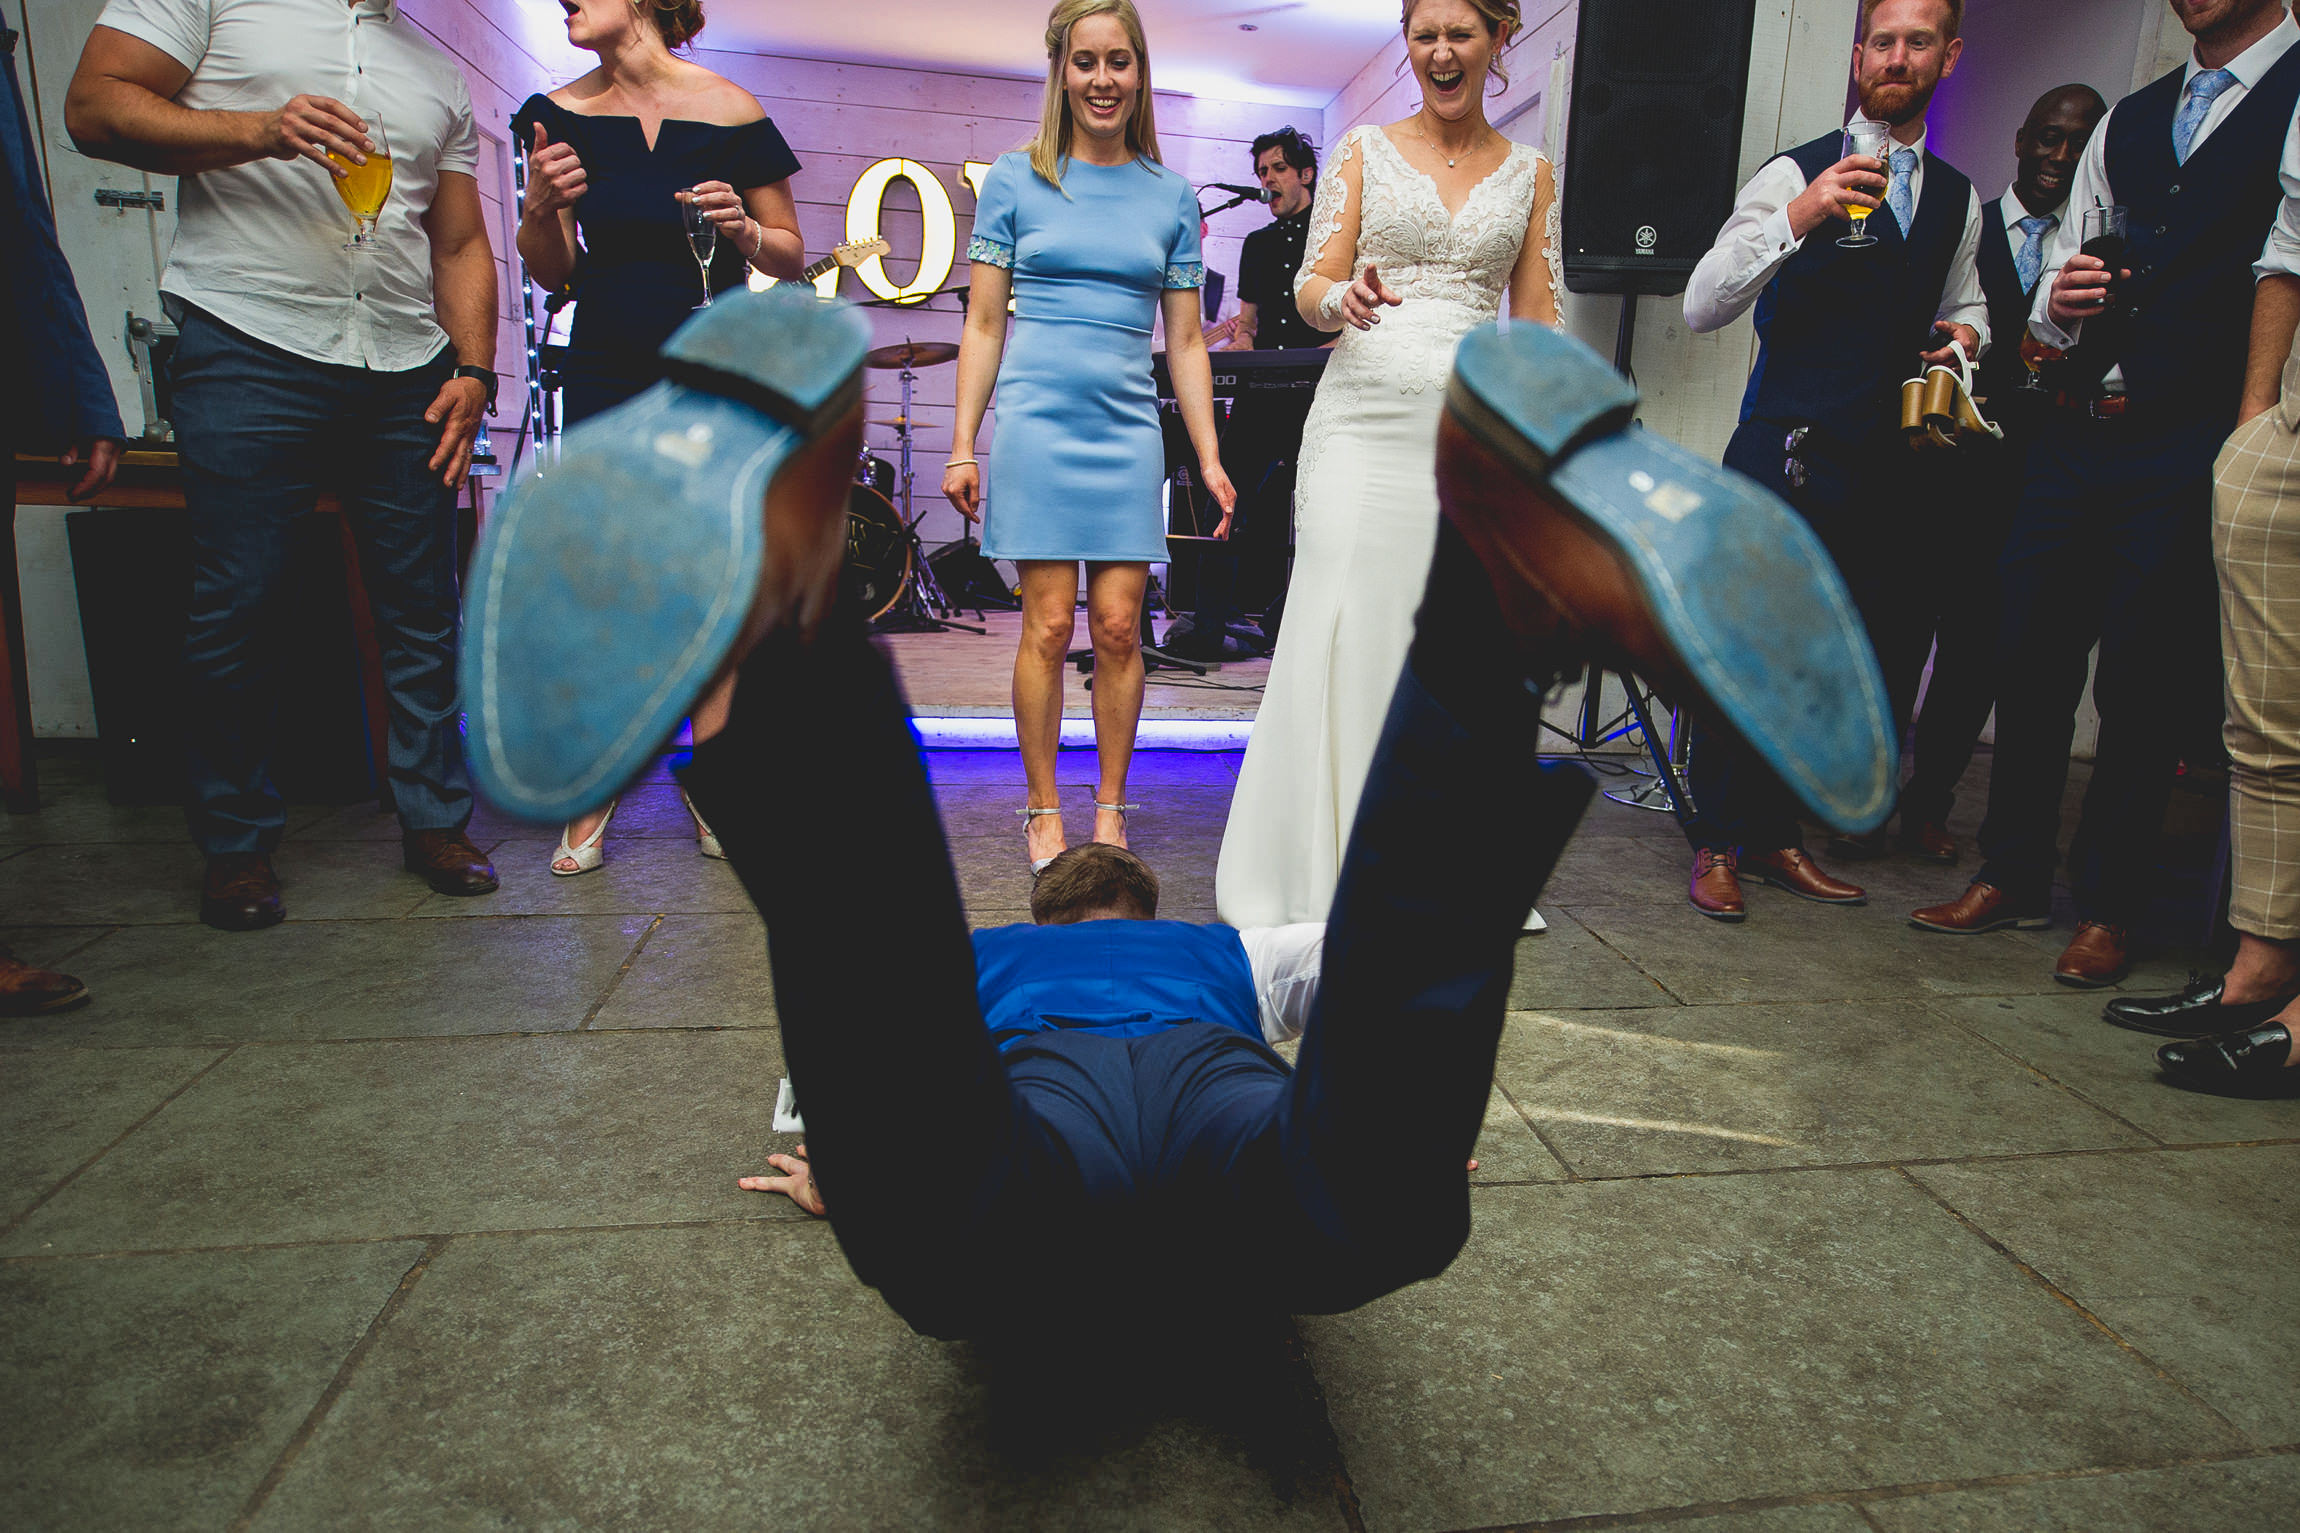 Wedding guests doing the worm on the dance floor - Documentary Wedding Photographer Manchester